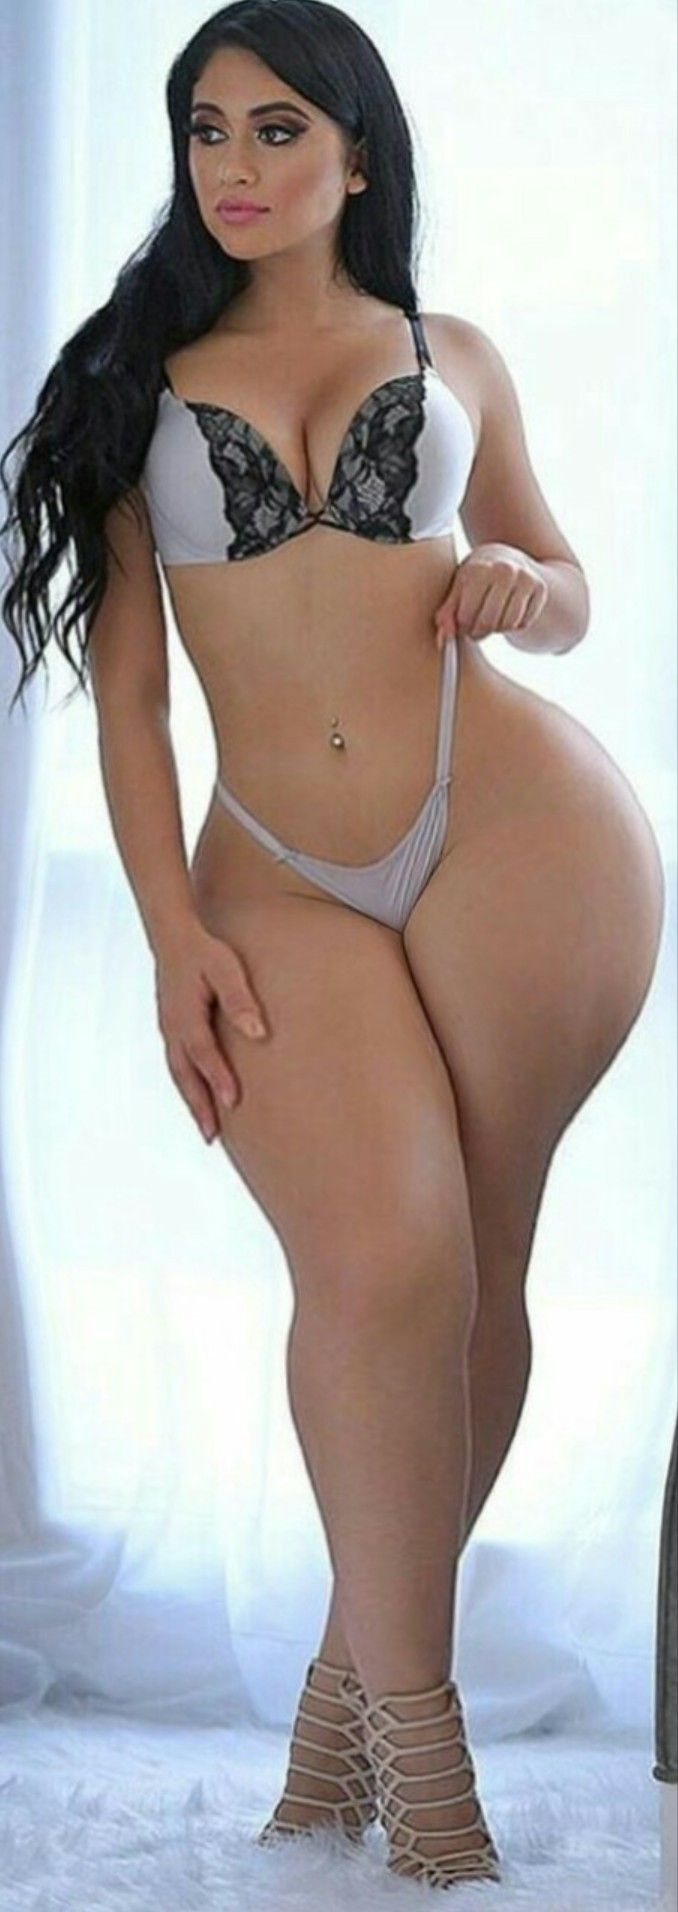 Sexy thick thigh latina women naked